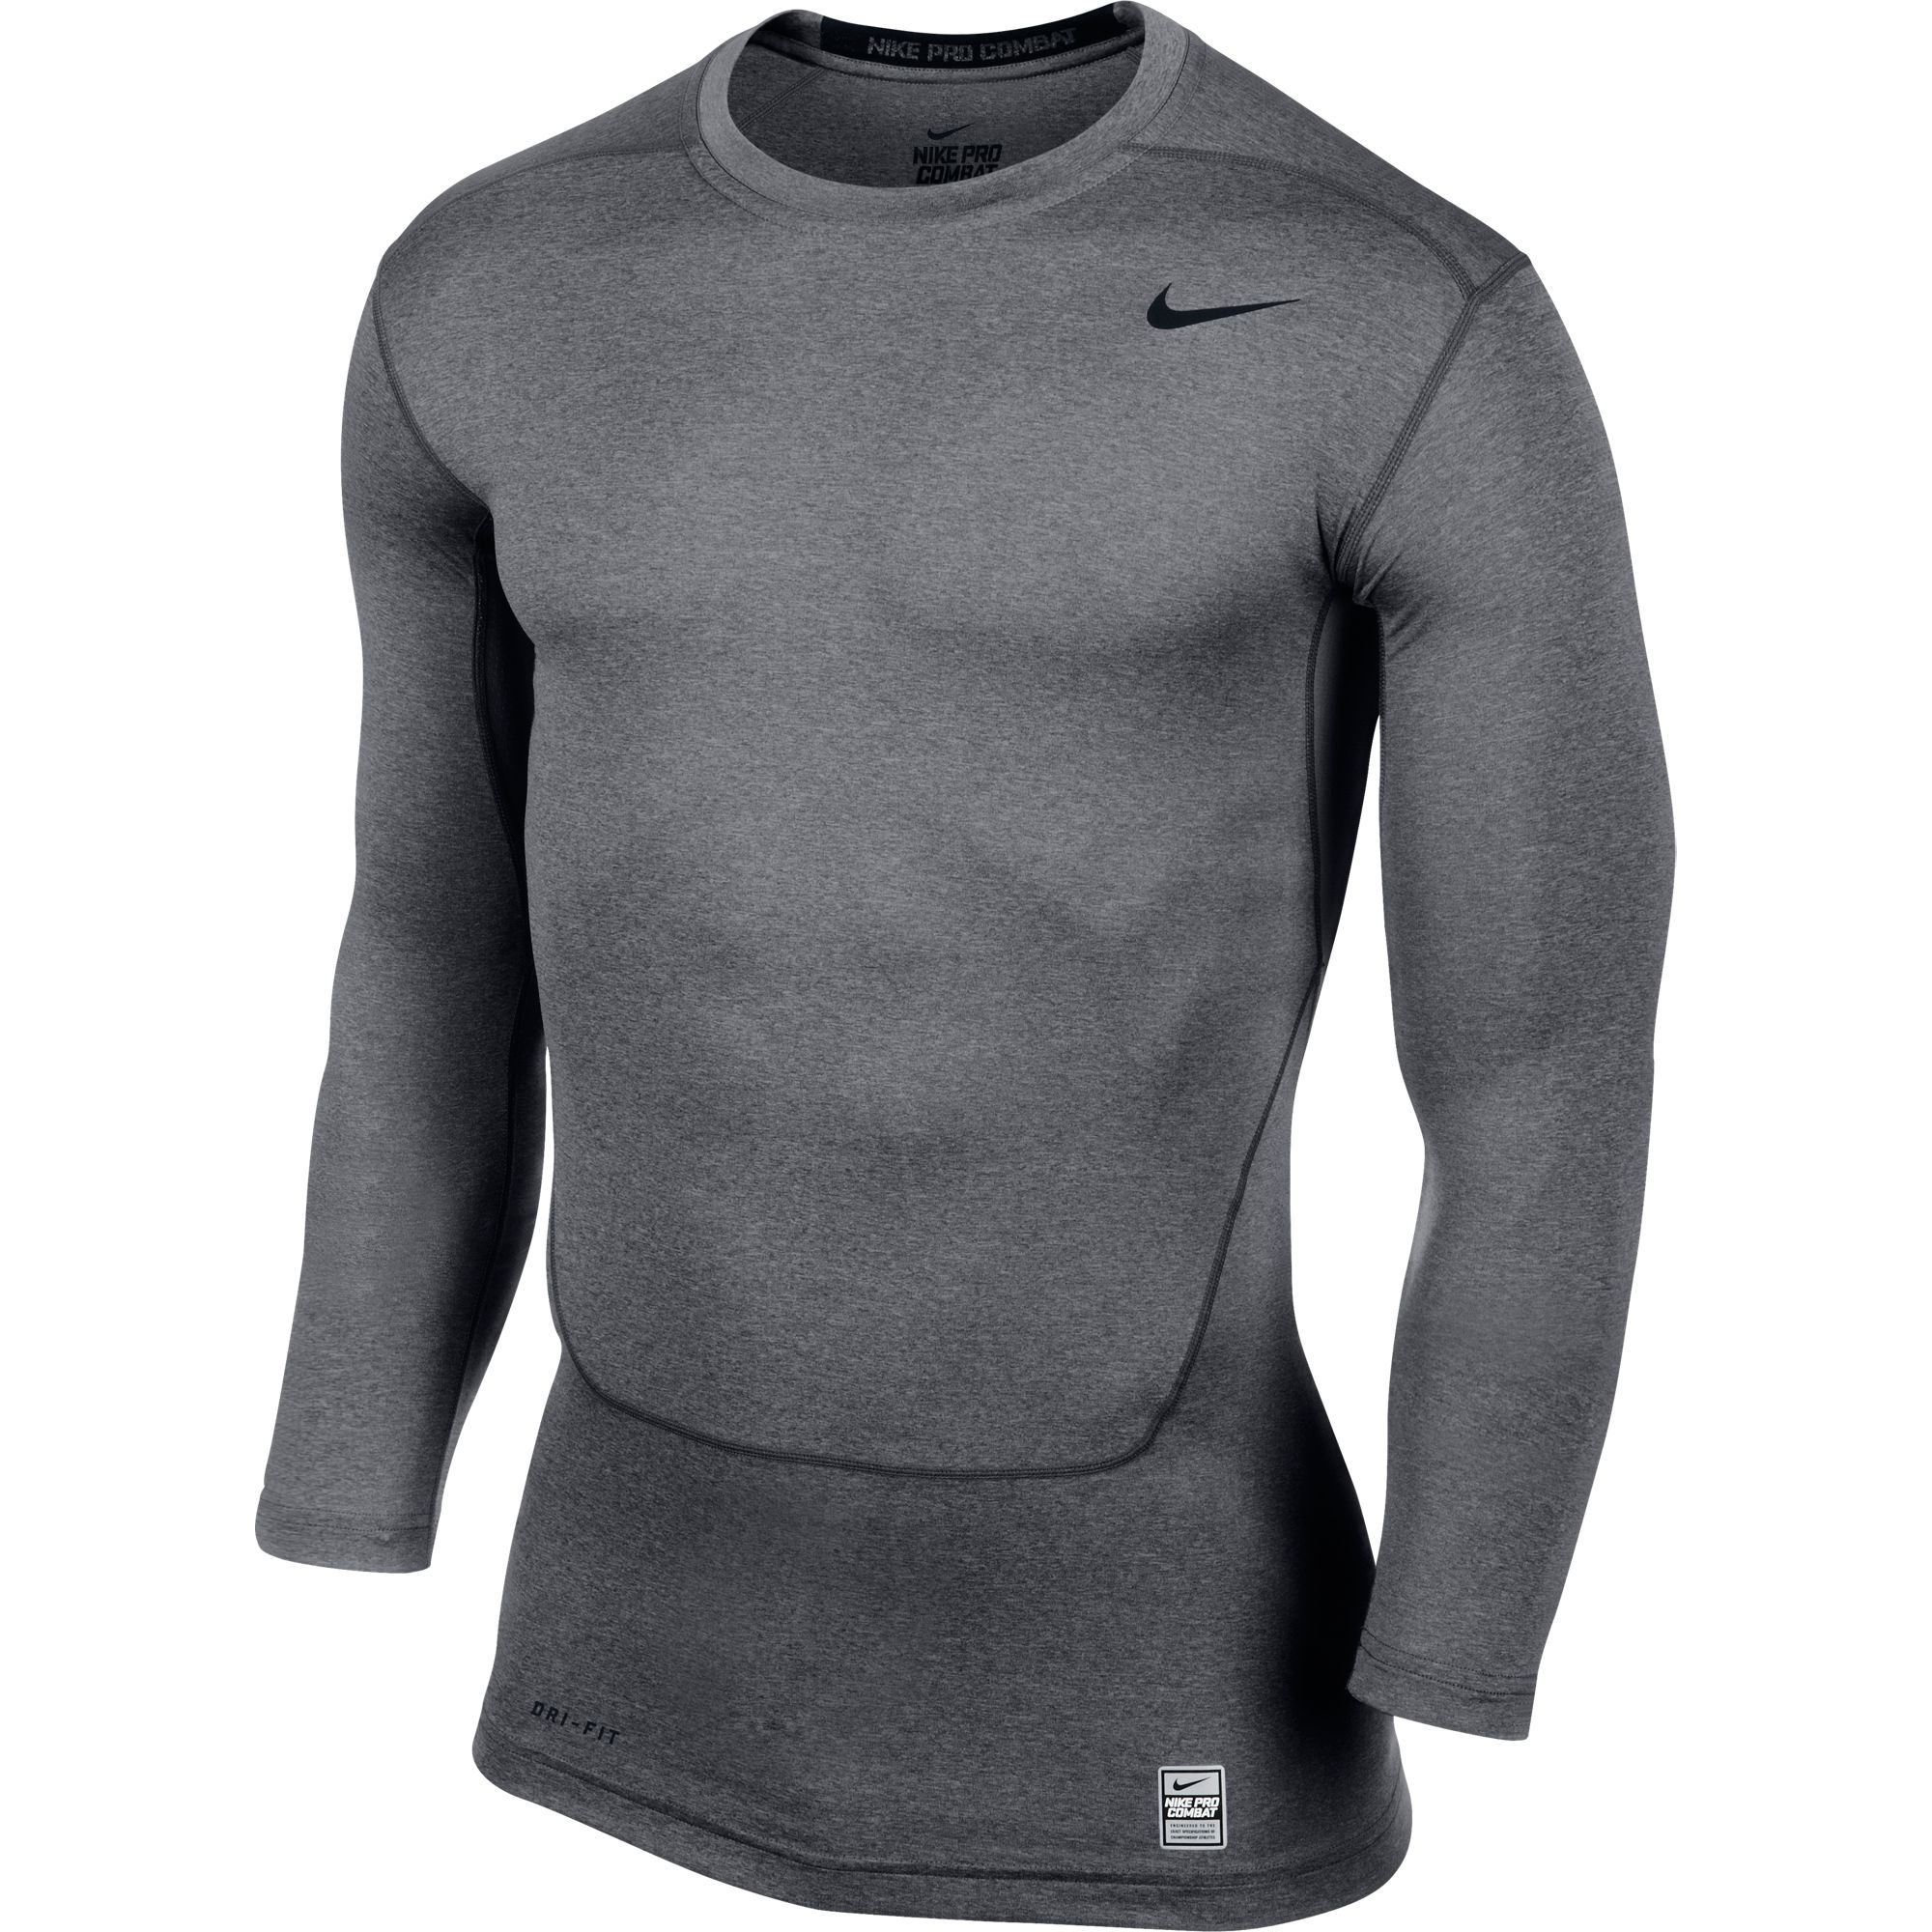 Nike Core Compression Long Sleeve Top 2.0 - SU14